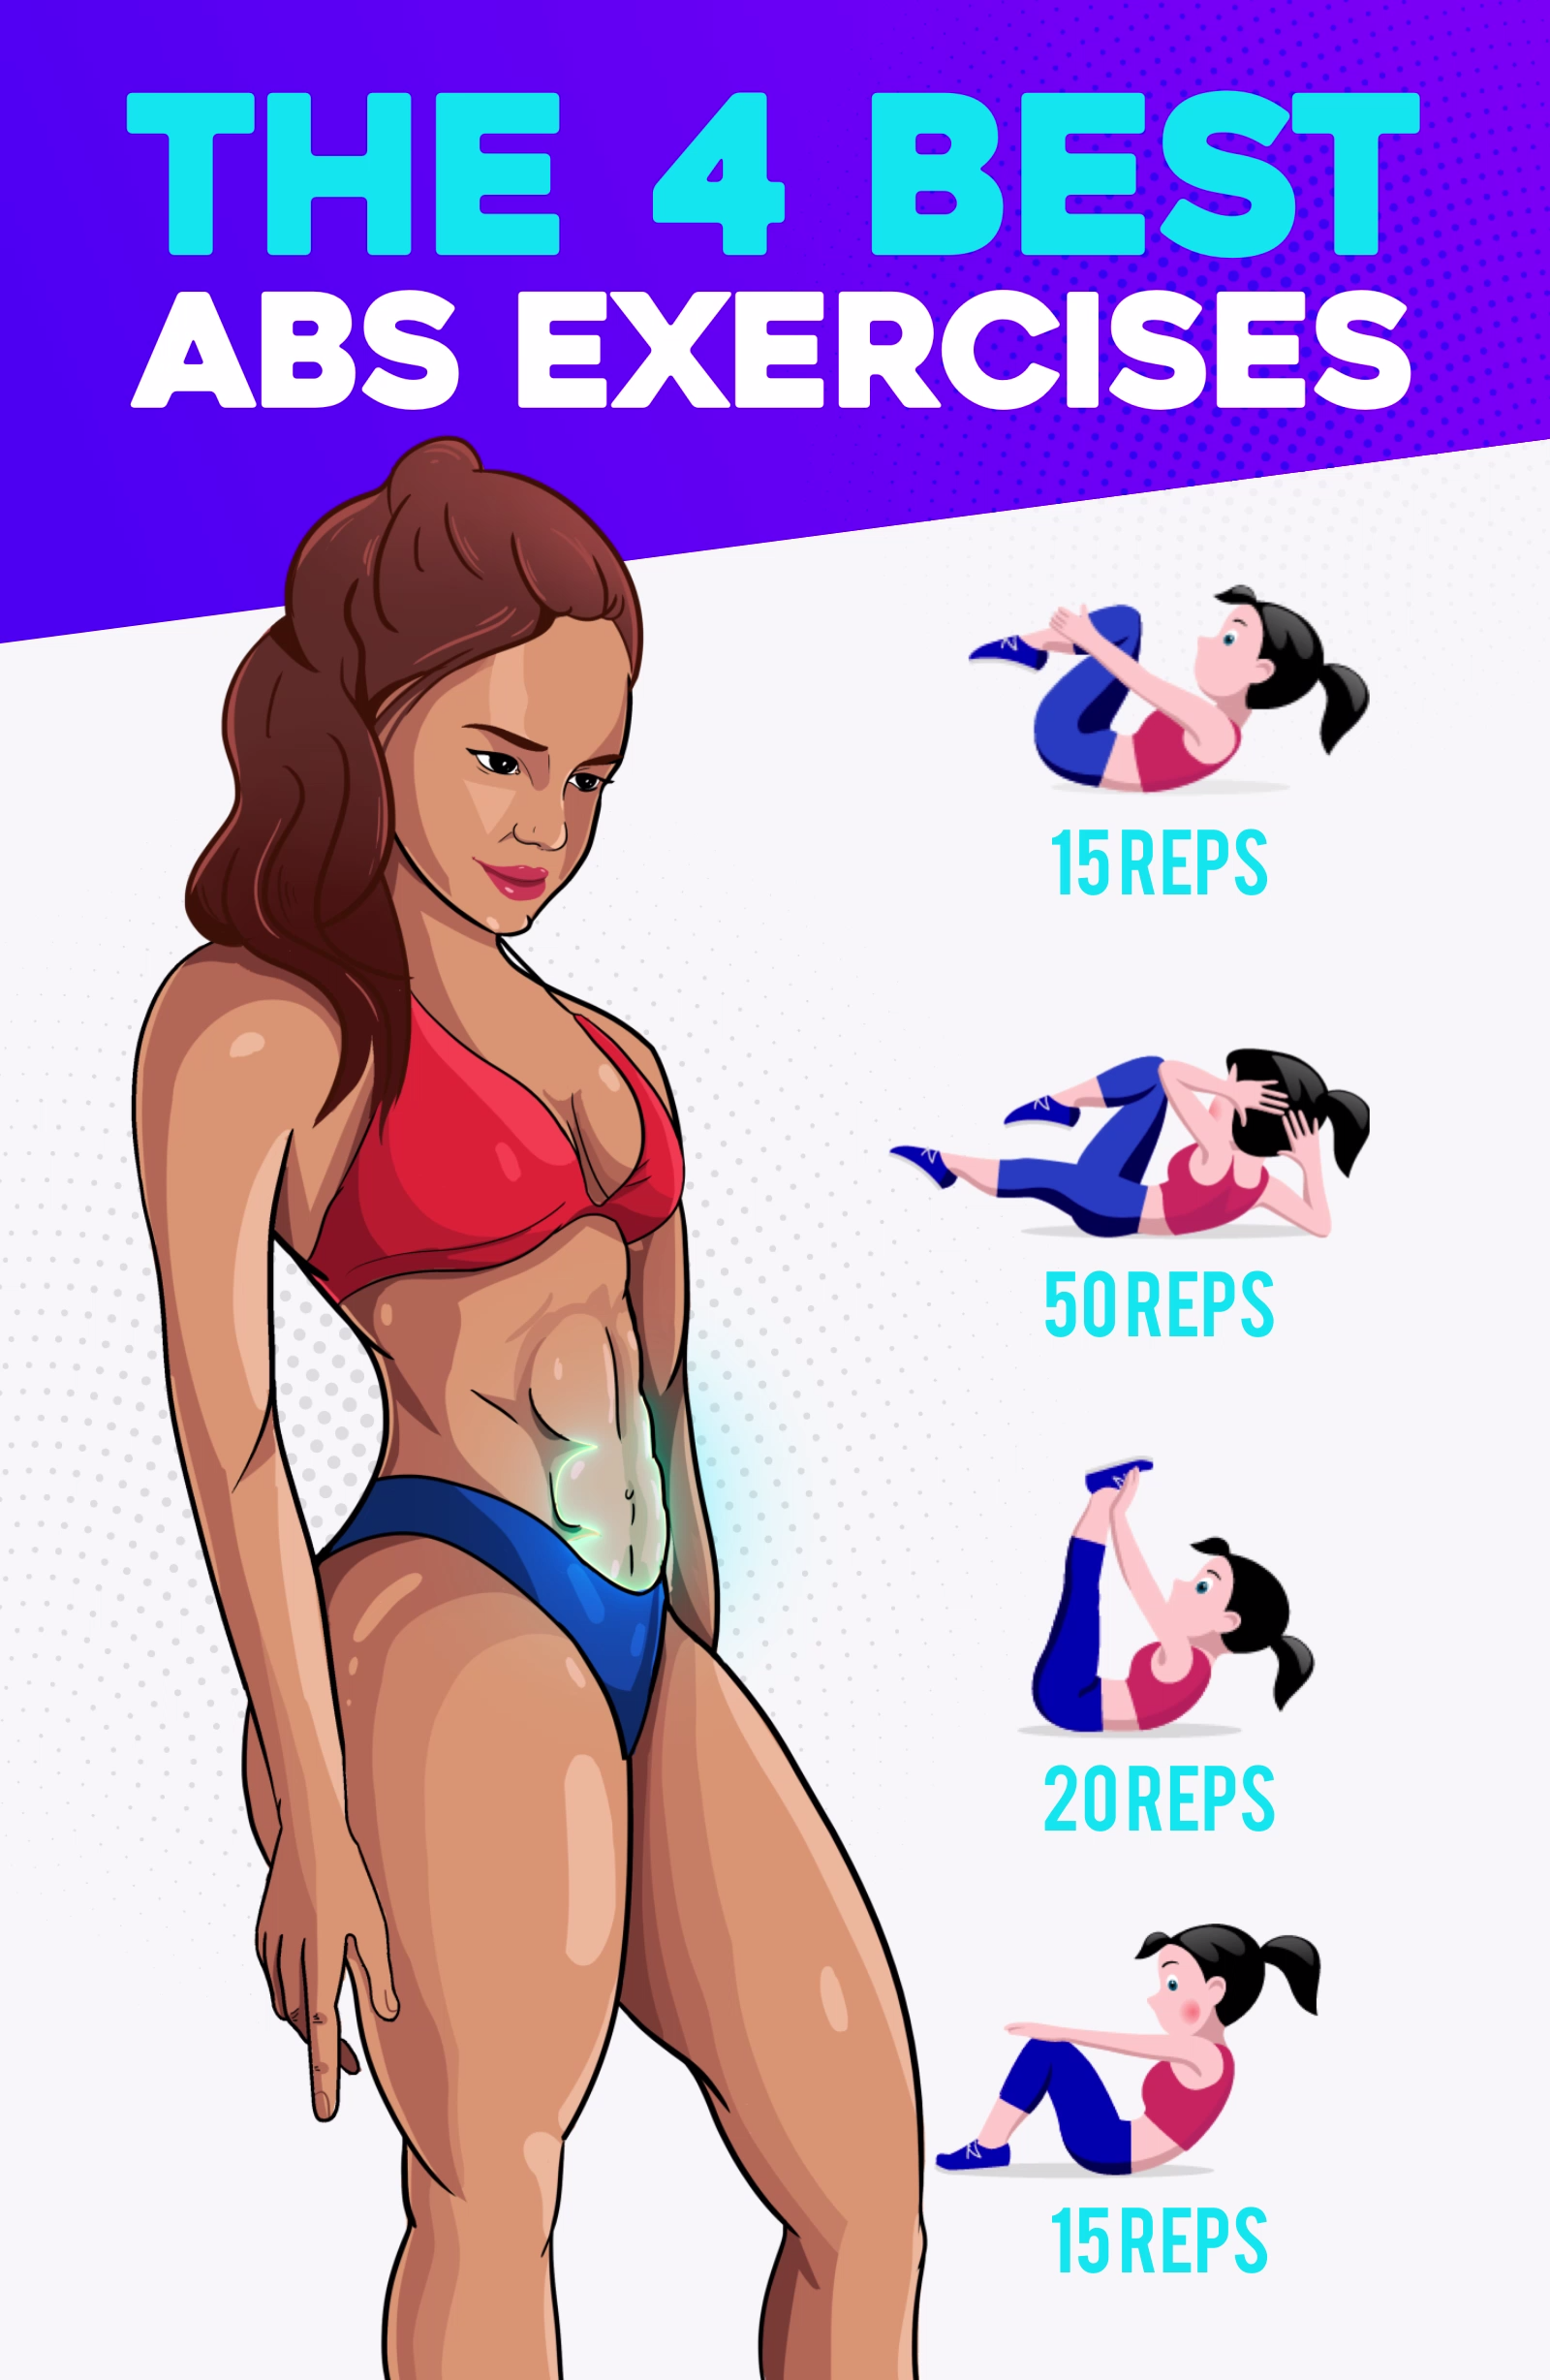 The Best ABS Exercises -   With just four exercises you can lose weight. These effective exercises w...